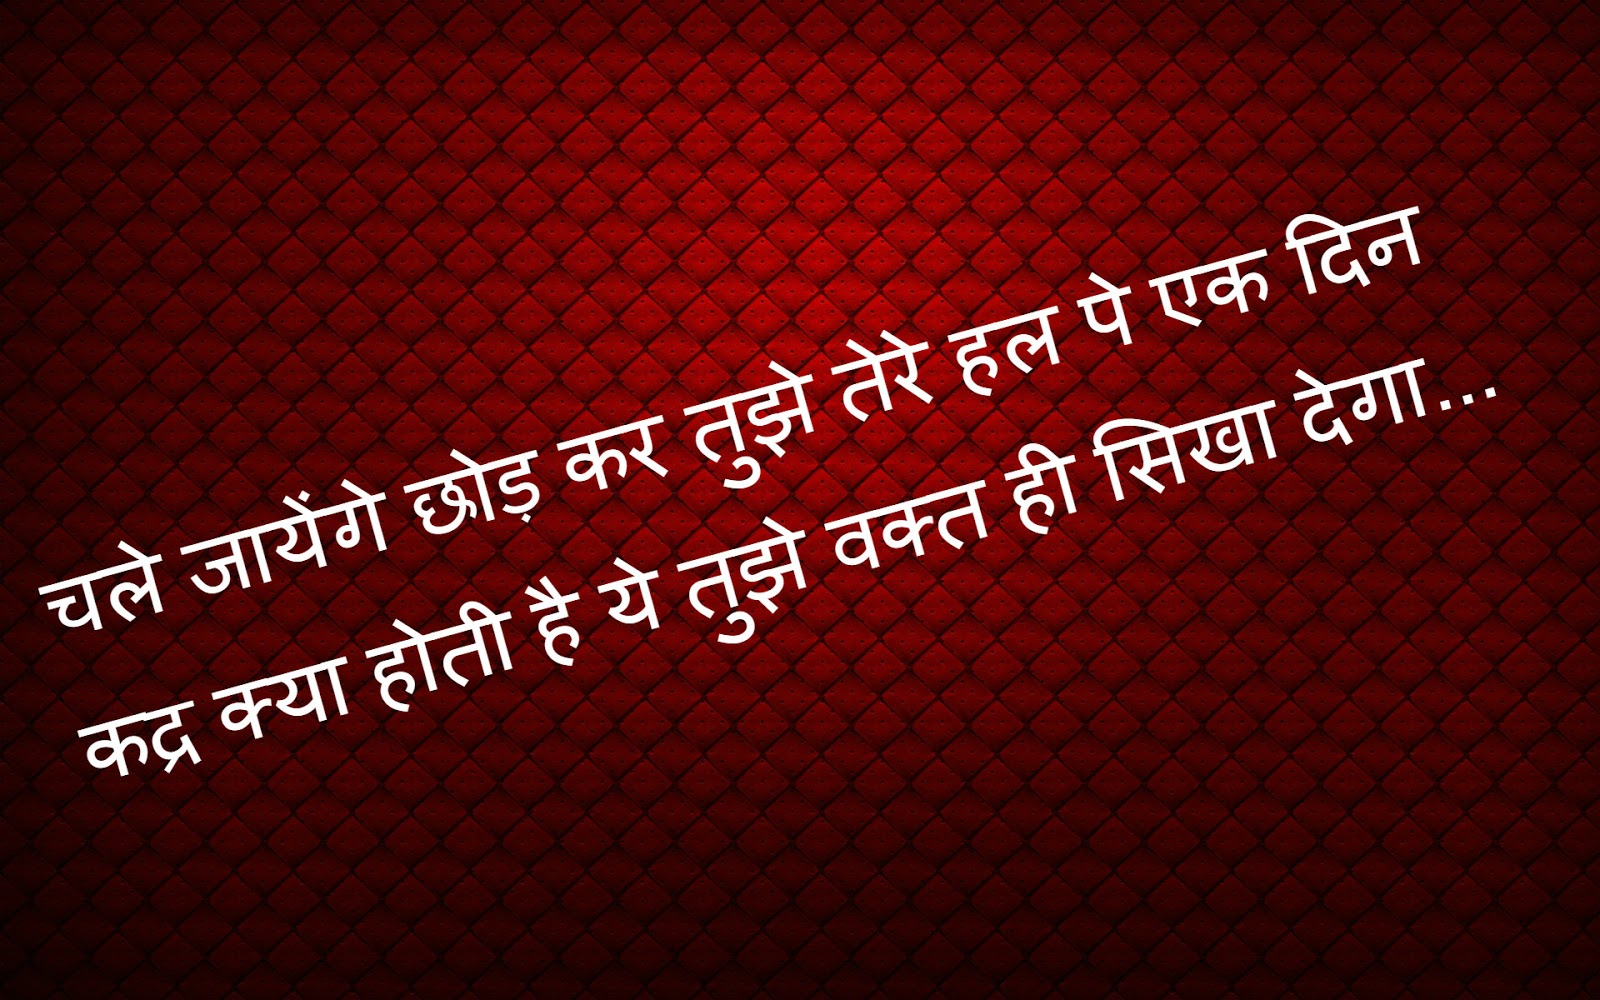 Love Shayari Hindi Pyaar Dosti Shayari In Hindi 2017 Latest